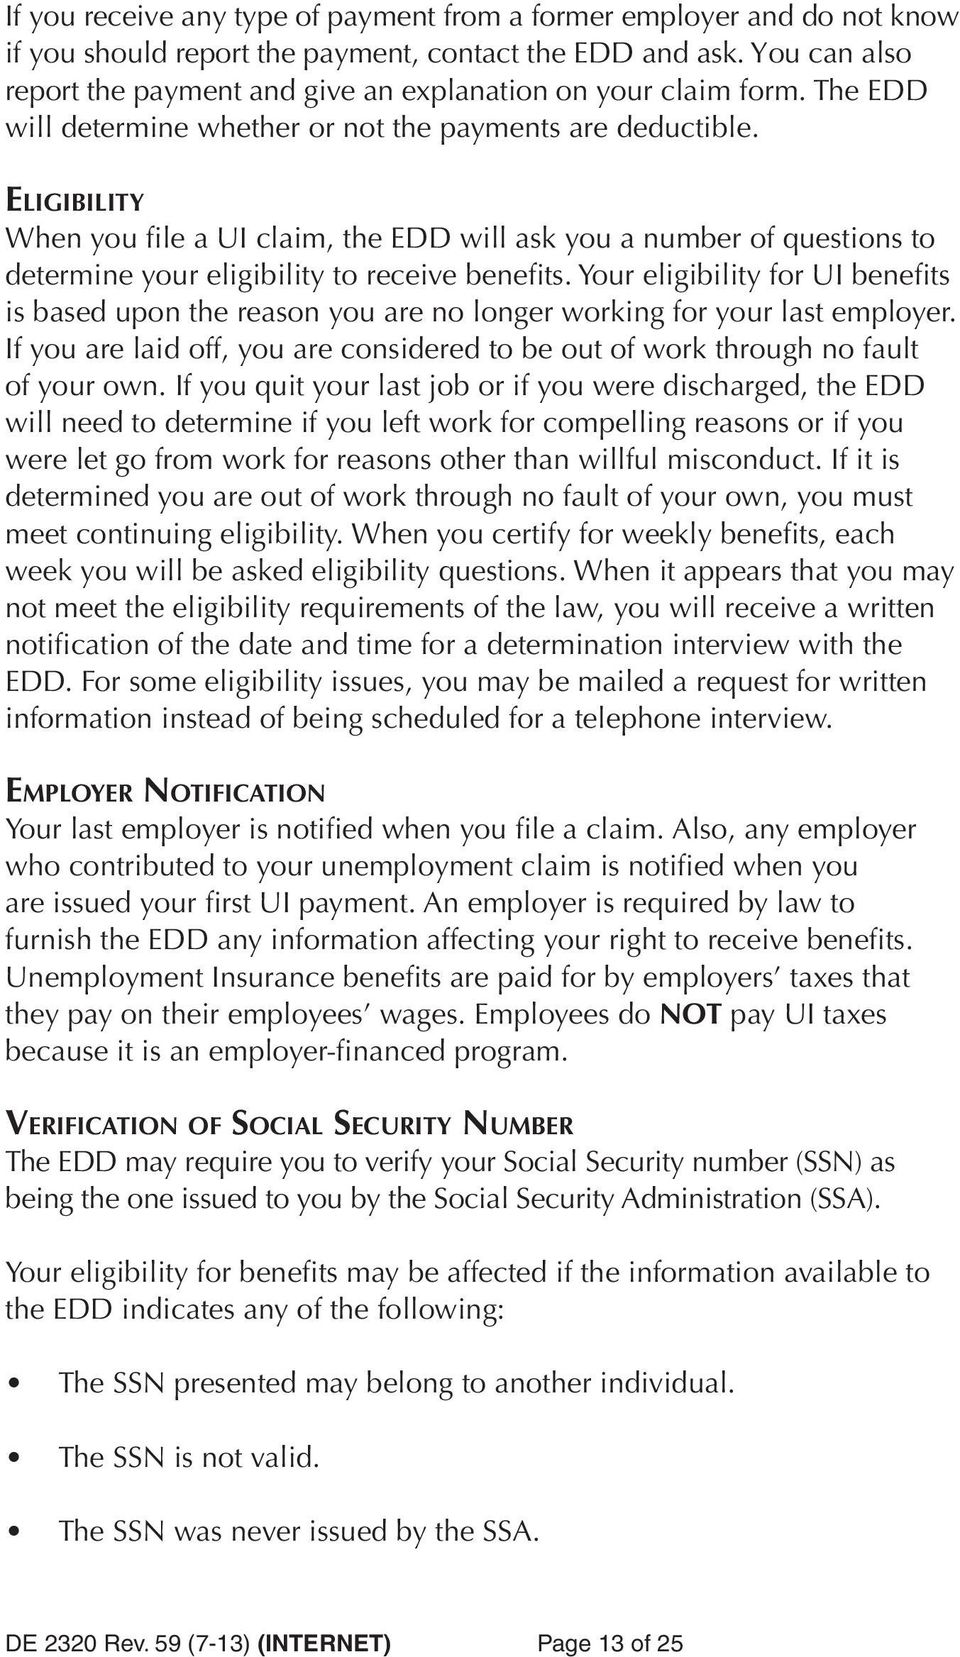 ELIGIBILITY When you file a UI claim, the EDD will ask you a number of questions to determine your eligibility to receive benefits.